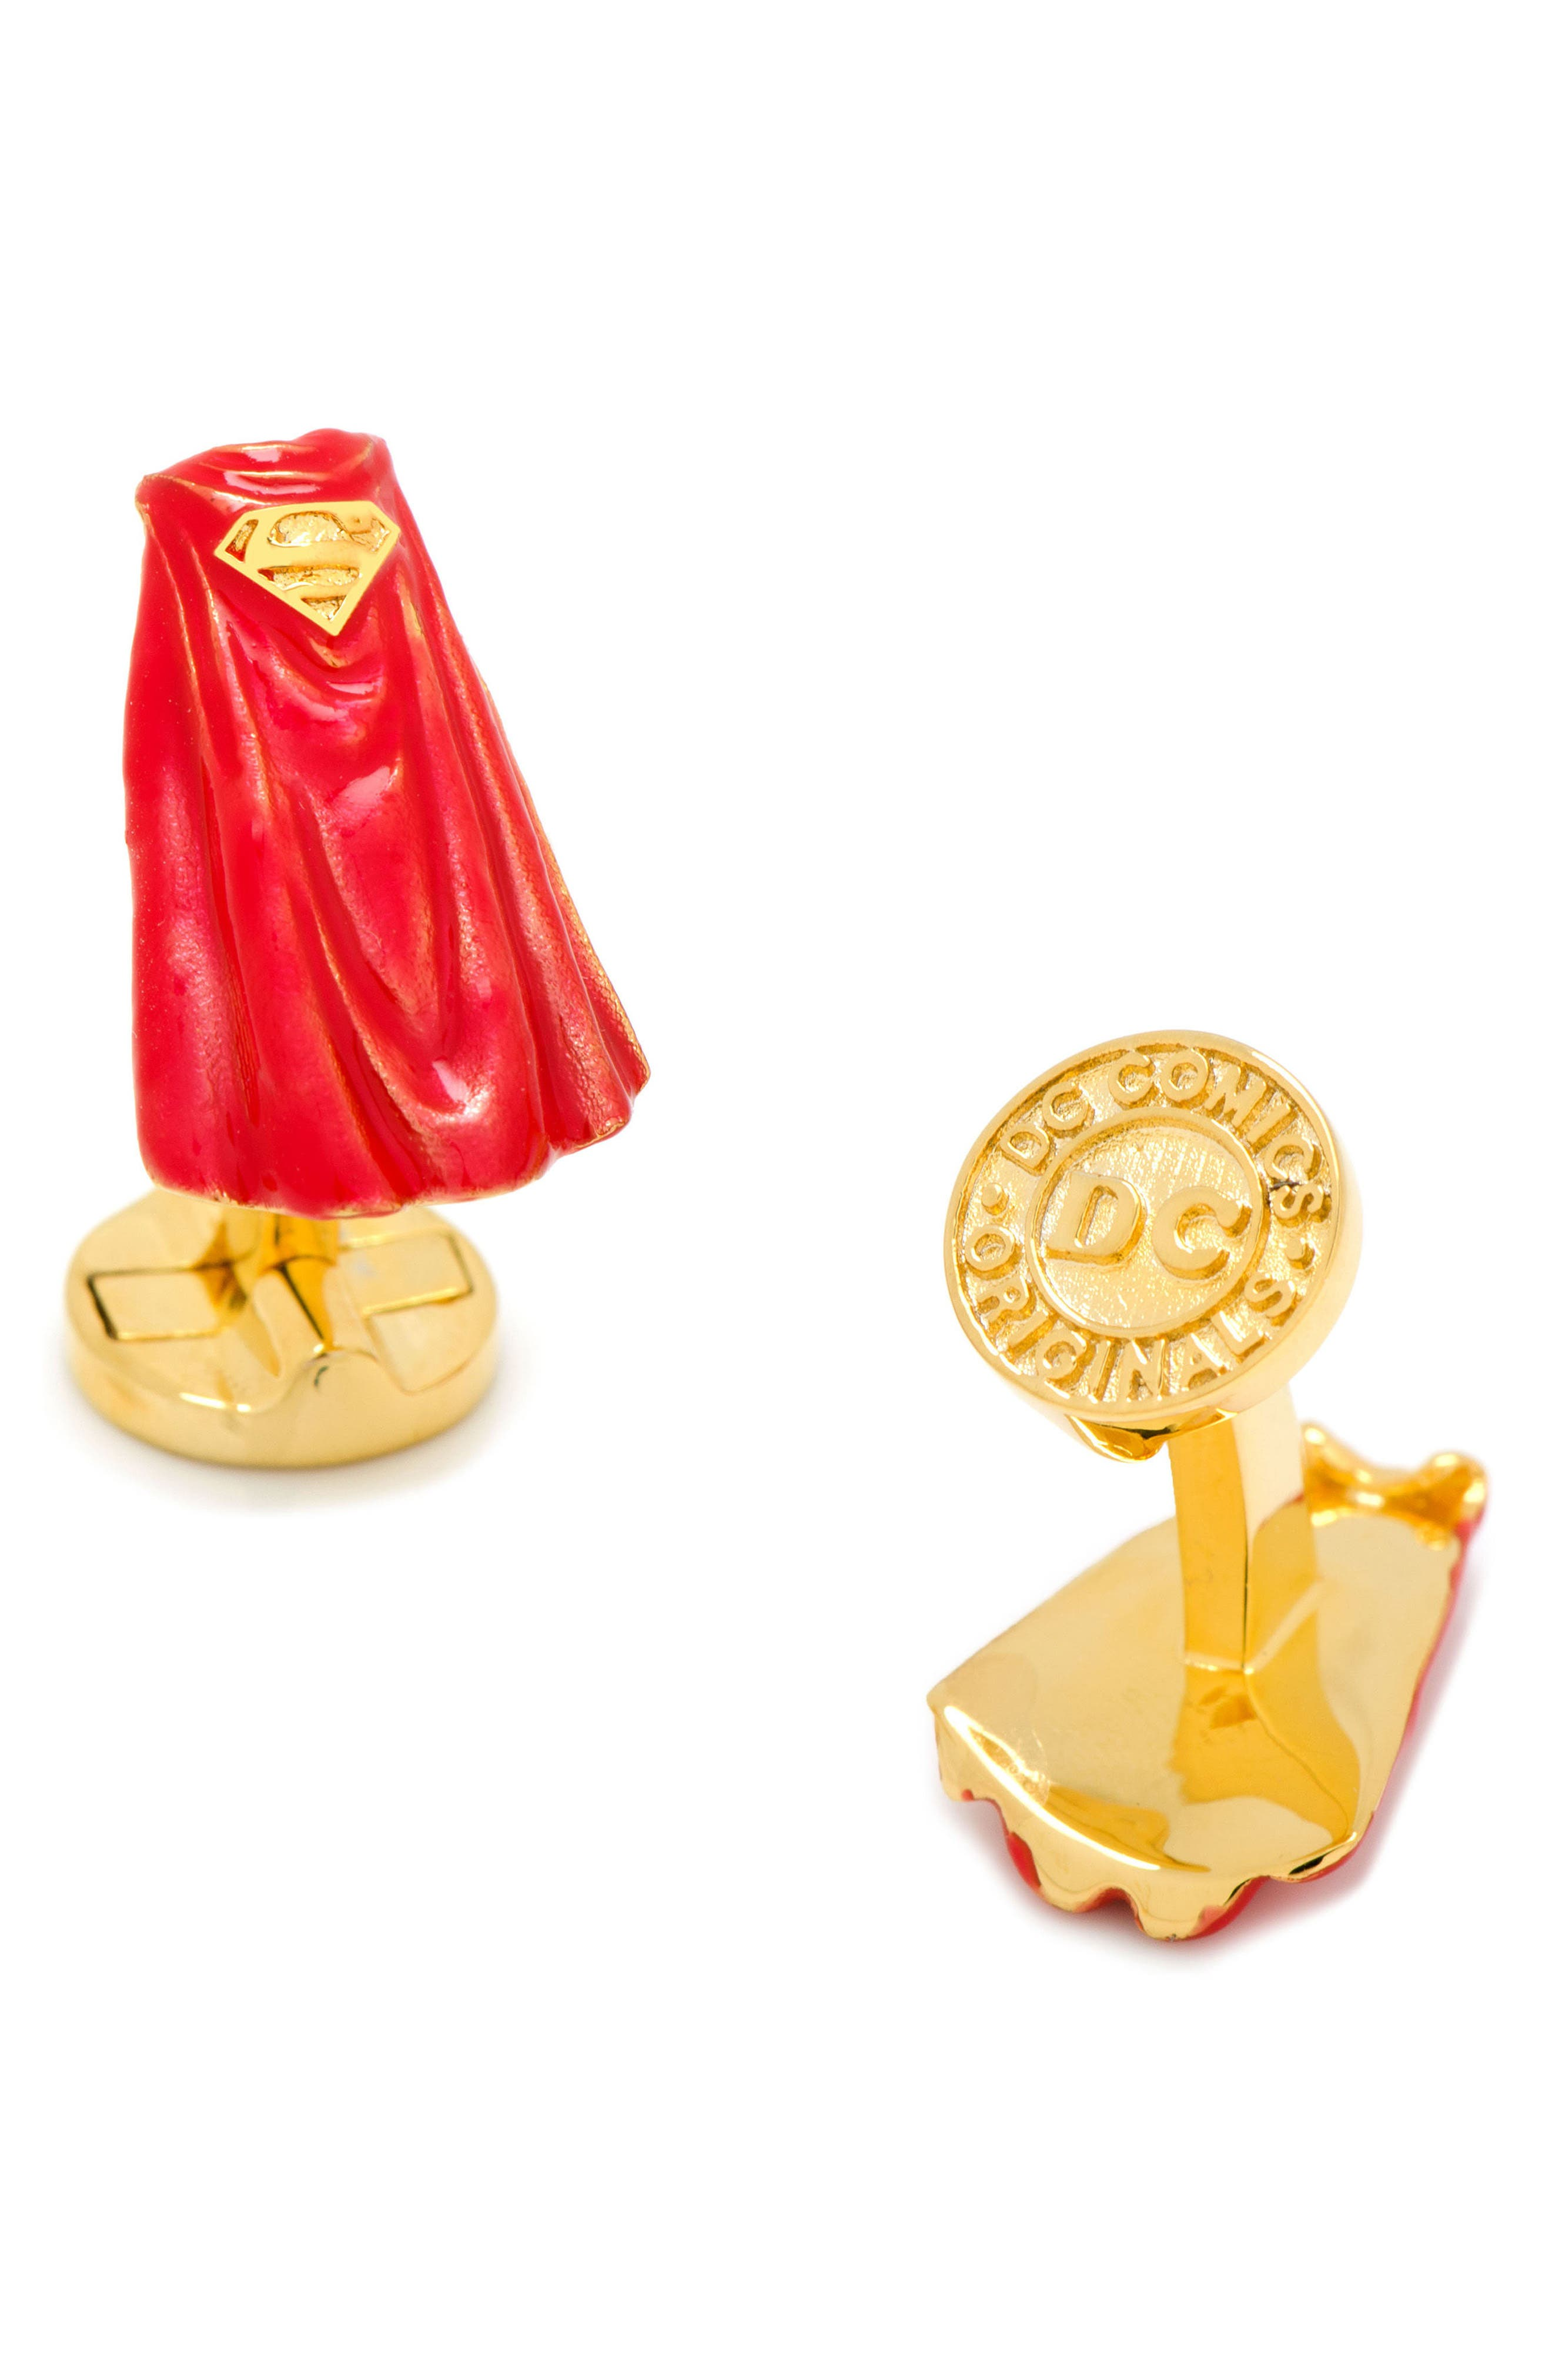 3D Superman Cape Cuff Links,                         Main,                         color, Red